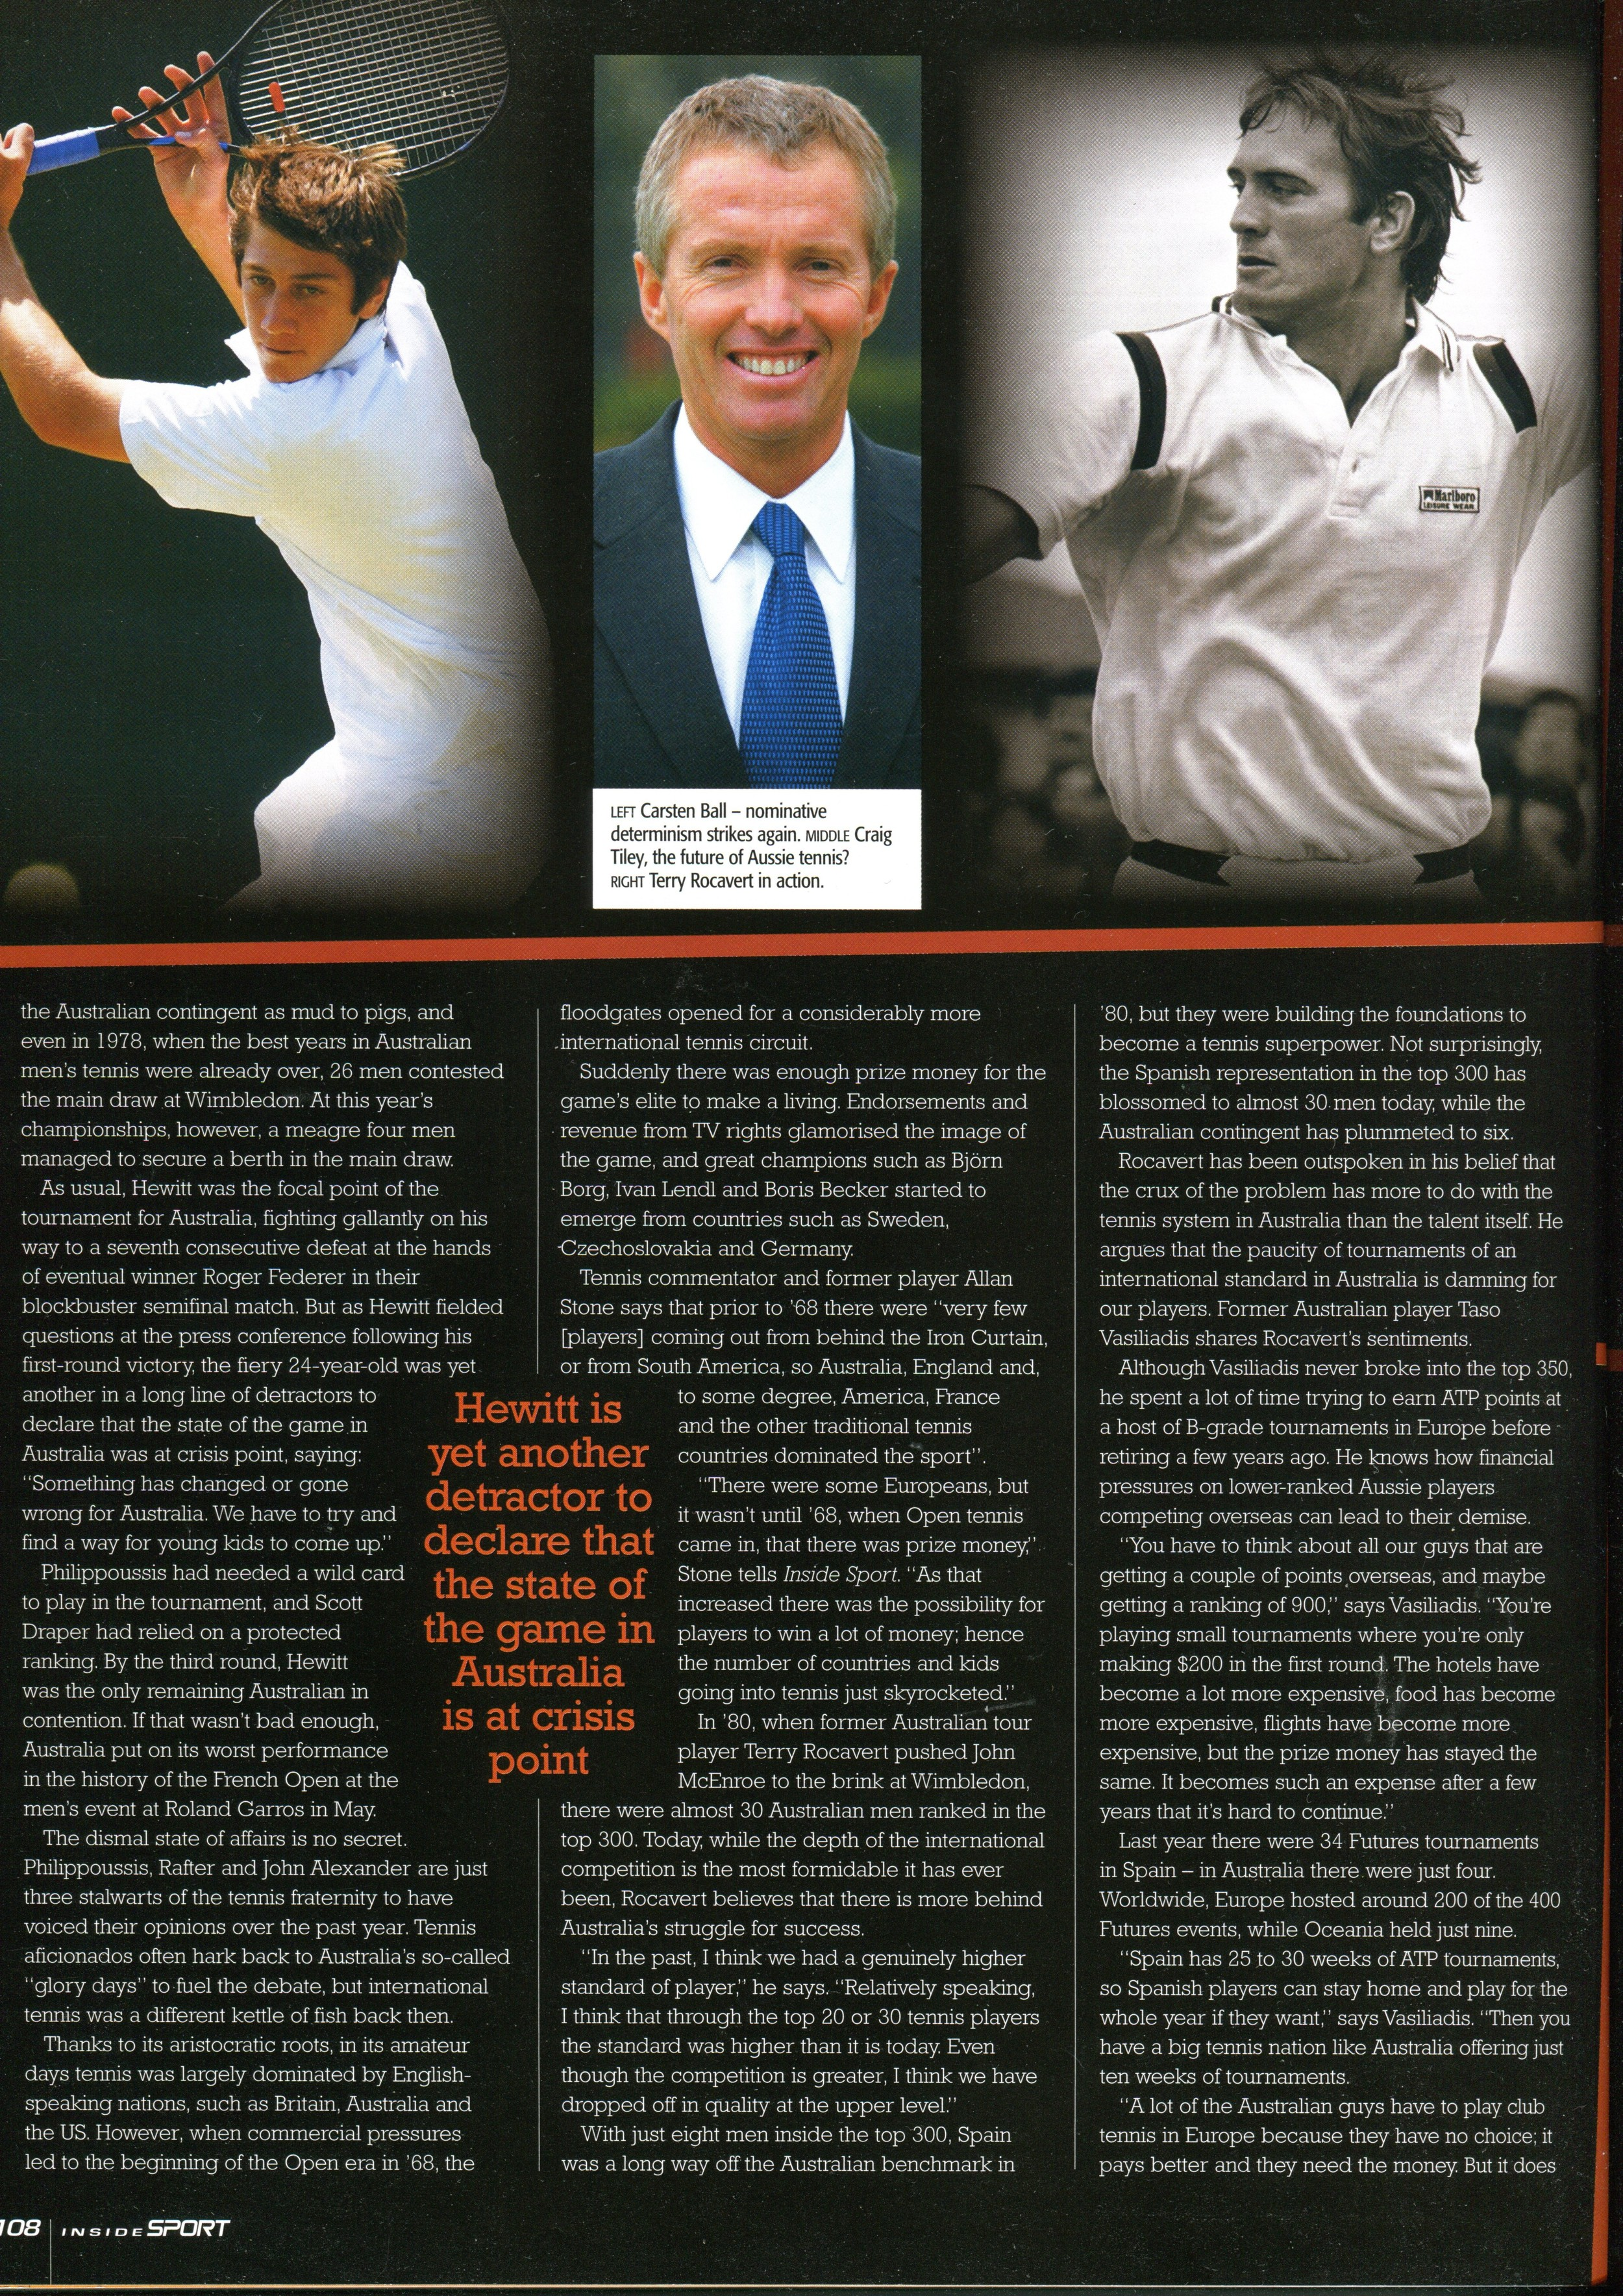 INSIDE SPORT NOVEMBER 2005 AUSTRALIAN TENNIS FUTURE FEATURE (4).jpg